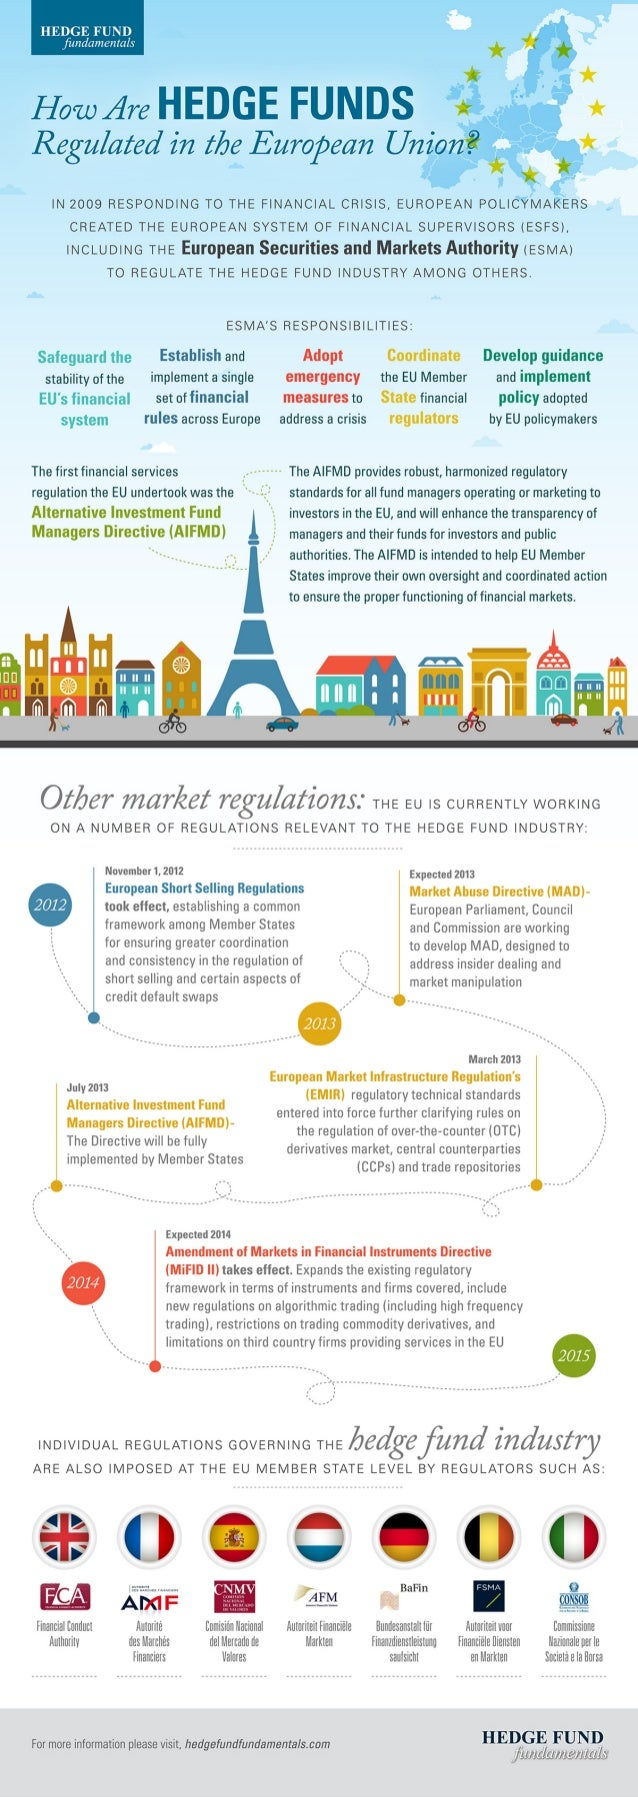 How Are Hedge Funds Regulated in the European Union? Infographic